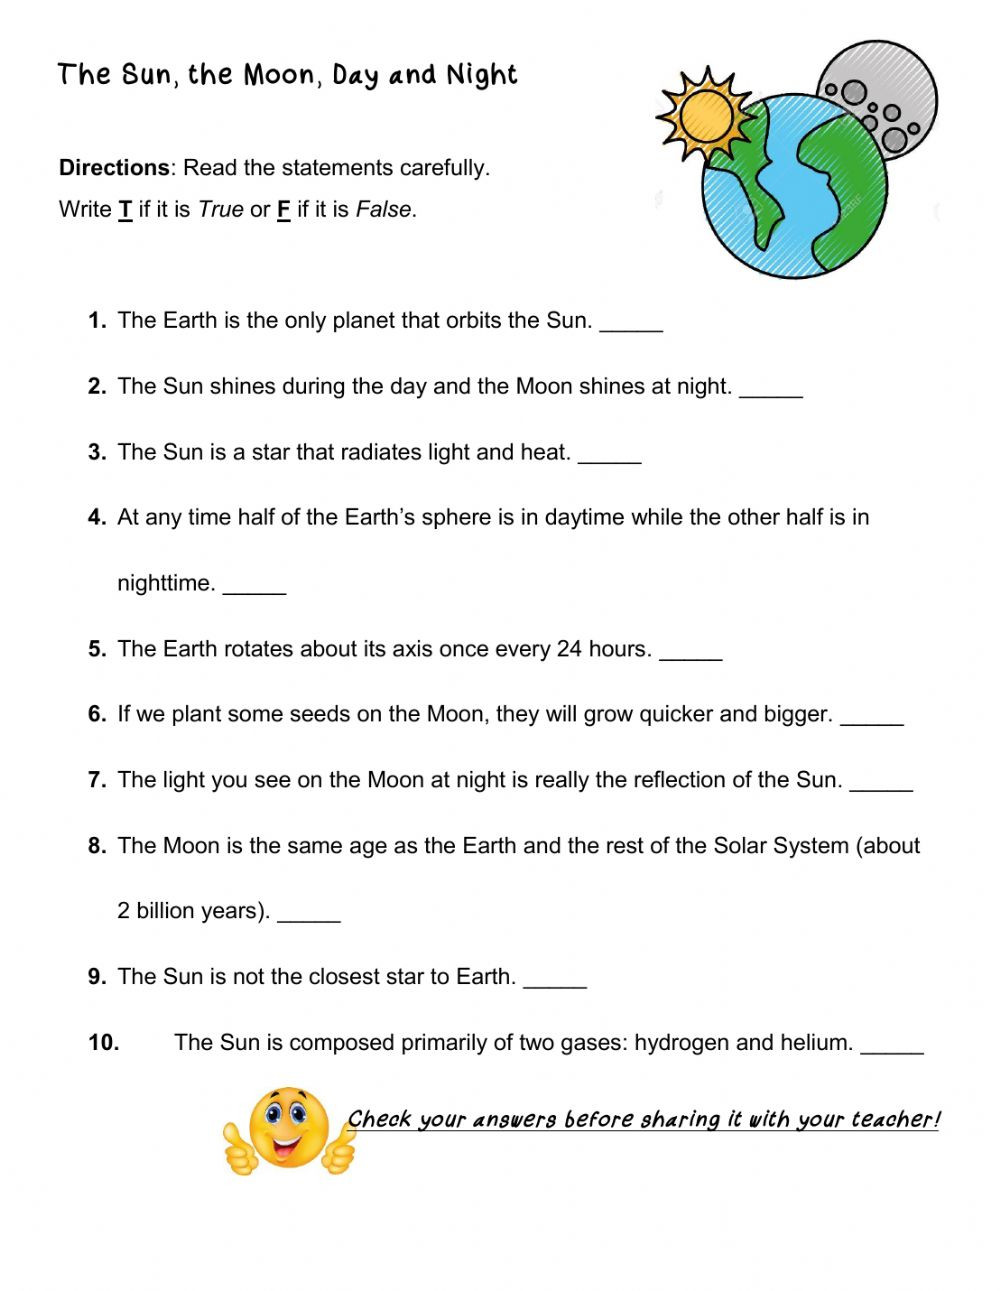 The Sun The Moon Day and Night worksheet